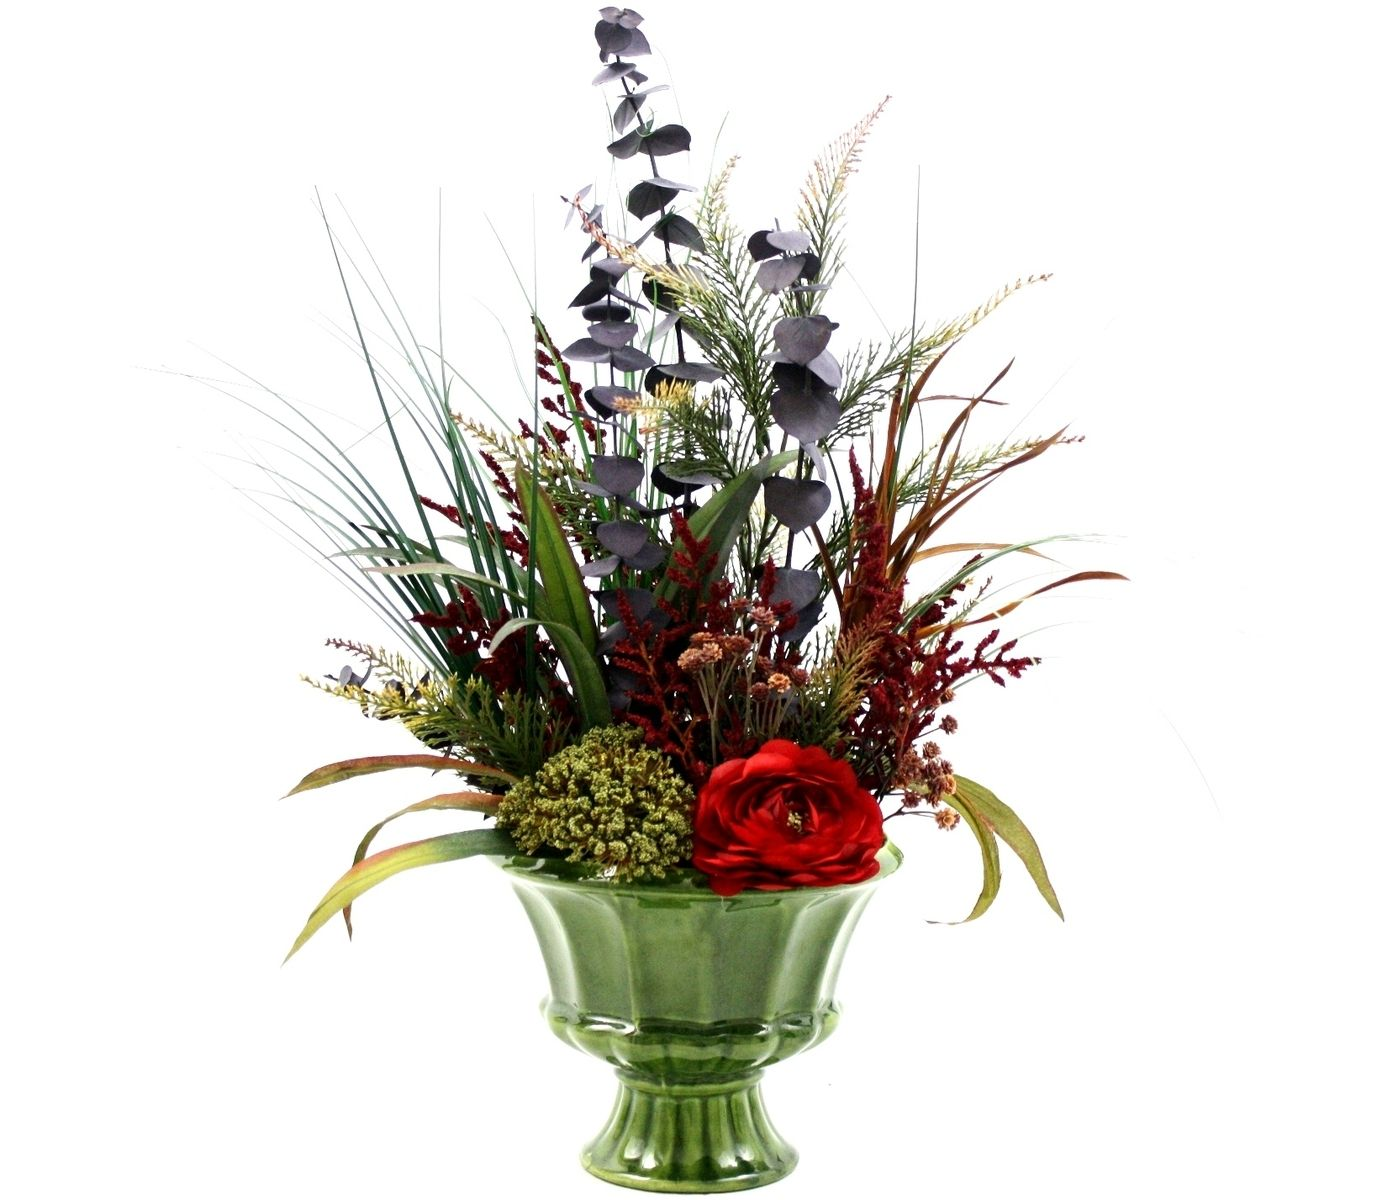 Custom made spring decor silk flower arrangement home decorating dining table centerpiece living